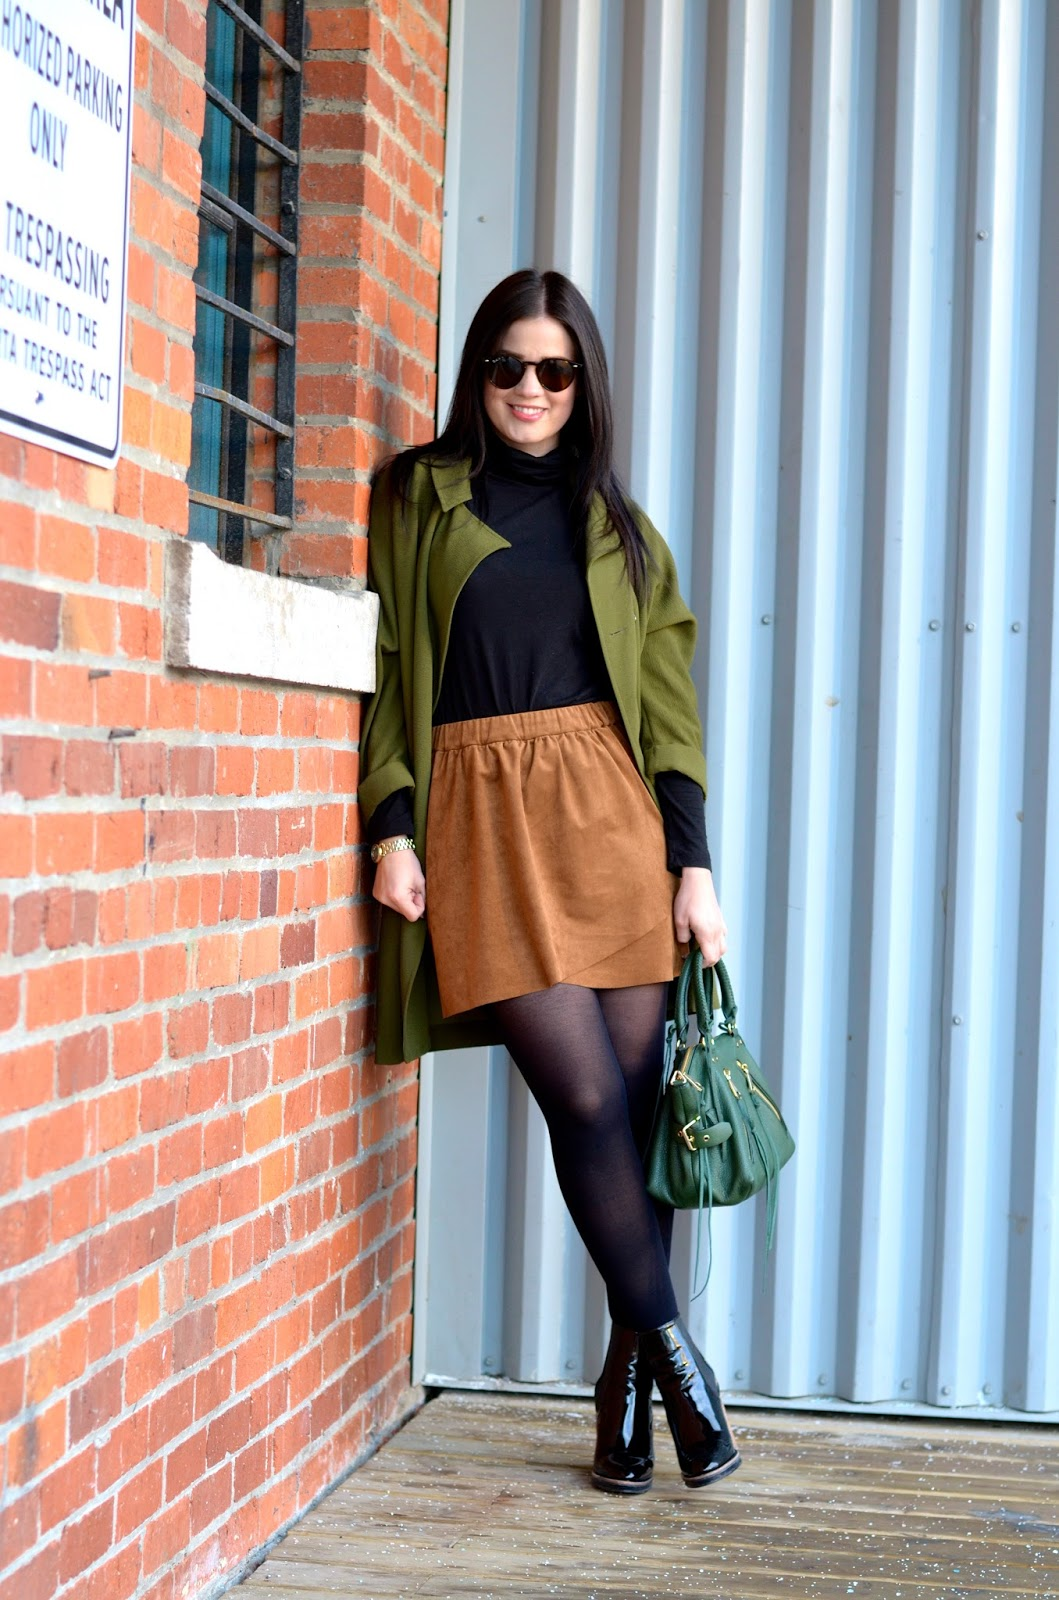 Street style tip of the day: Frigid